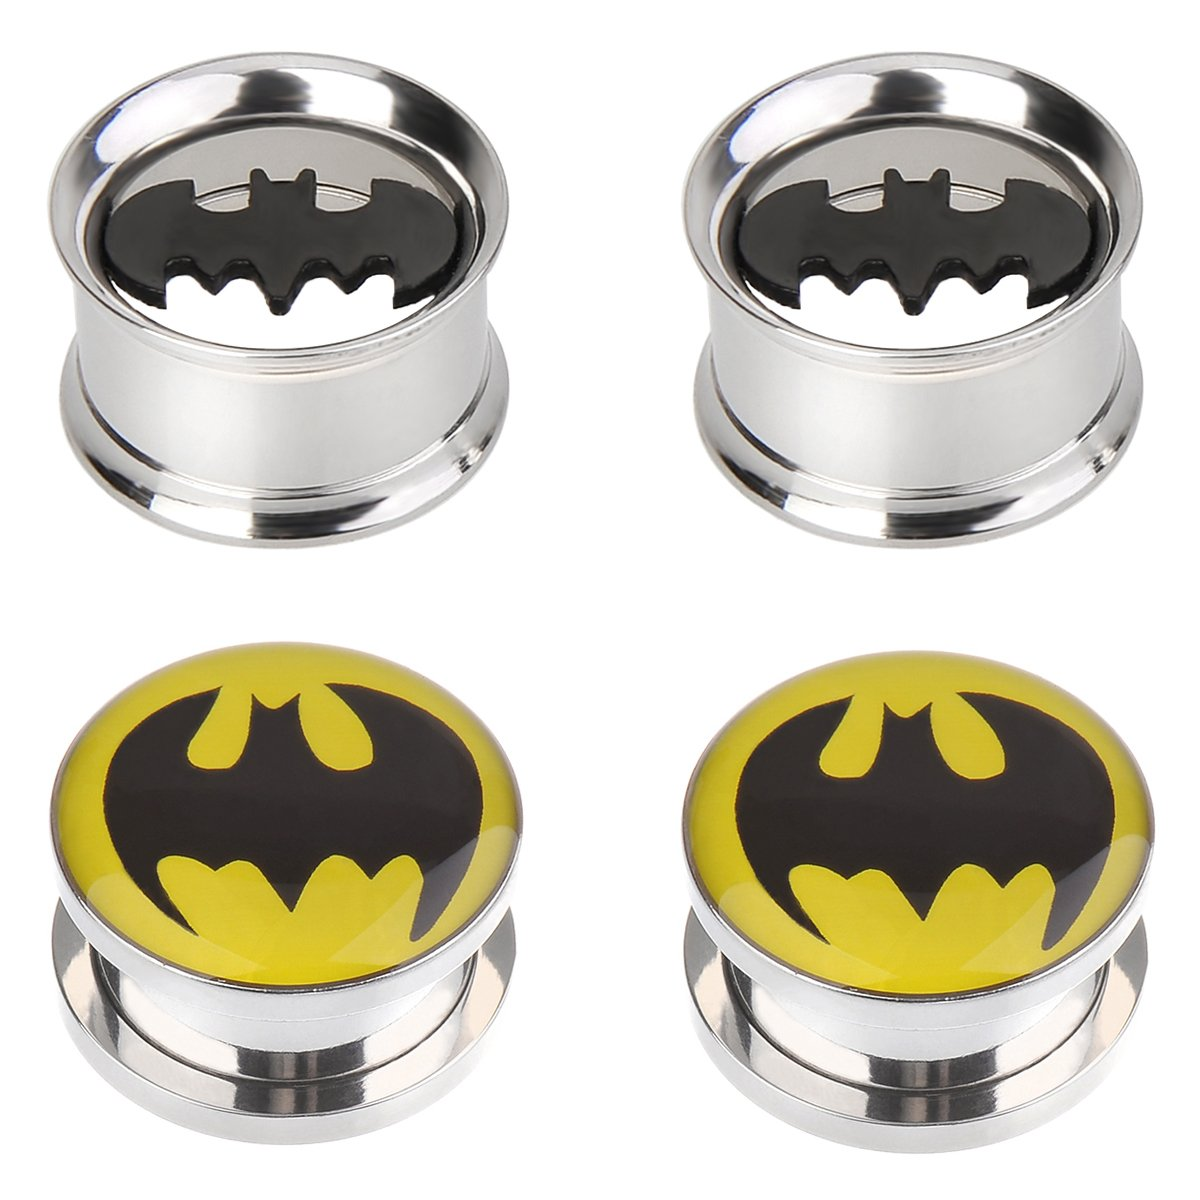 IPINK-Batman Stainless Steel Screw-On Gauges/Tunnels Double Flare Ear Plugs 2 Pairs (2 Pair of 00 Gauge(10mm)) by IPINK